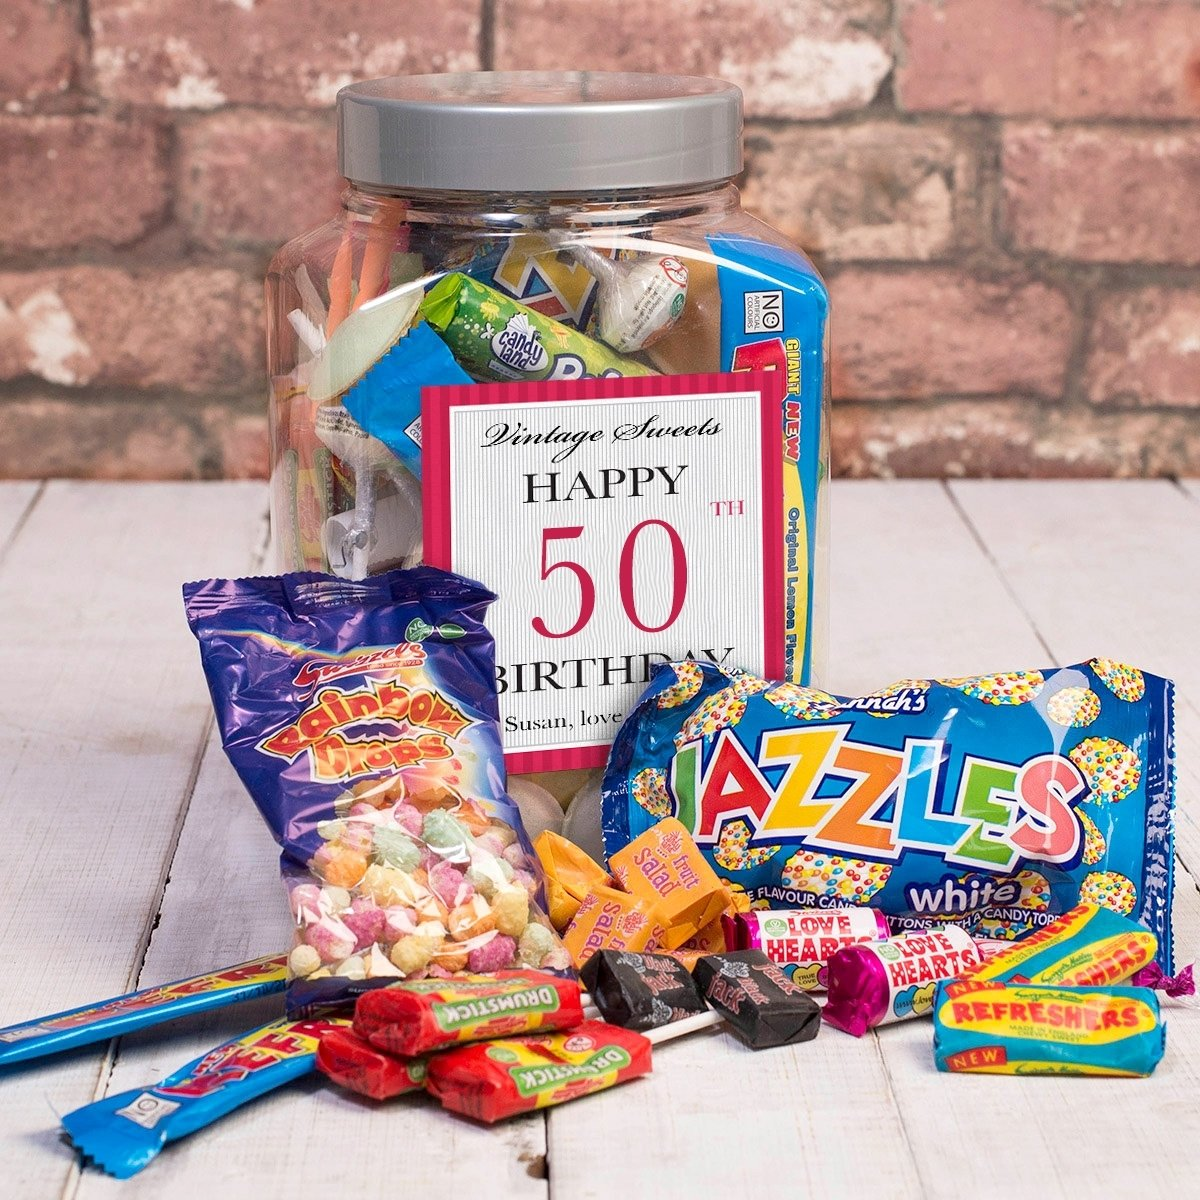 10 Awesome 50Th Birthday Gift Ideas For Brother 50th birthday gifts present ideas gettingpersonal co uk